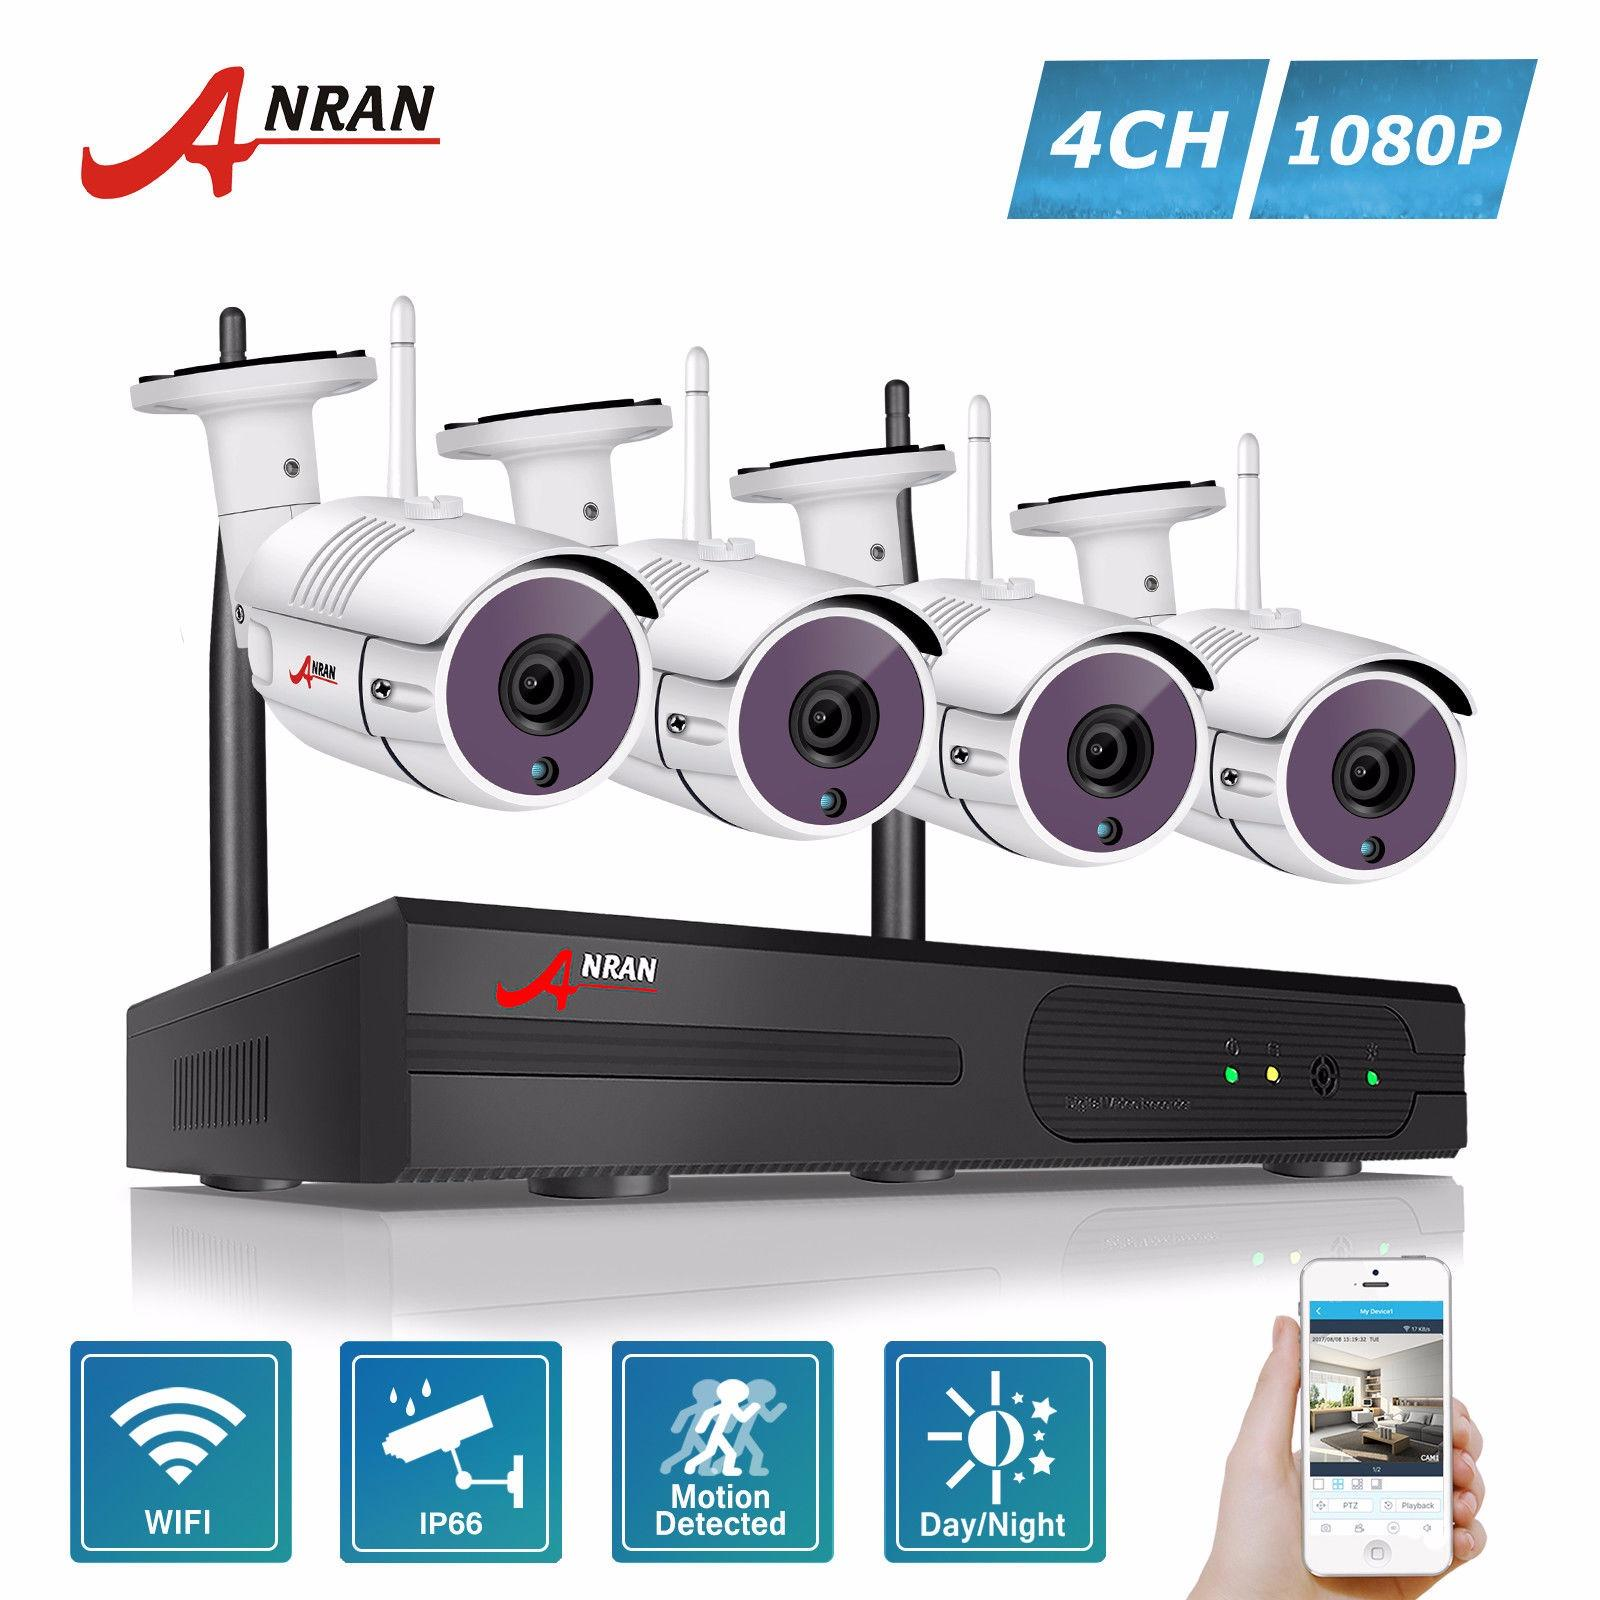 Jual Anran 4Ch Wireless Nvr Security Cctv System P2P 1080P Hd Outdoor Vandalproof Wfi Ip Camera Murah Di Tiongkok